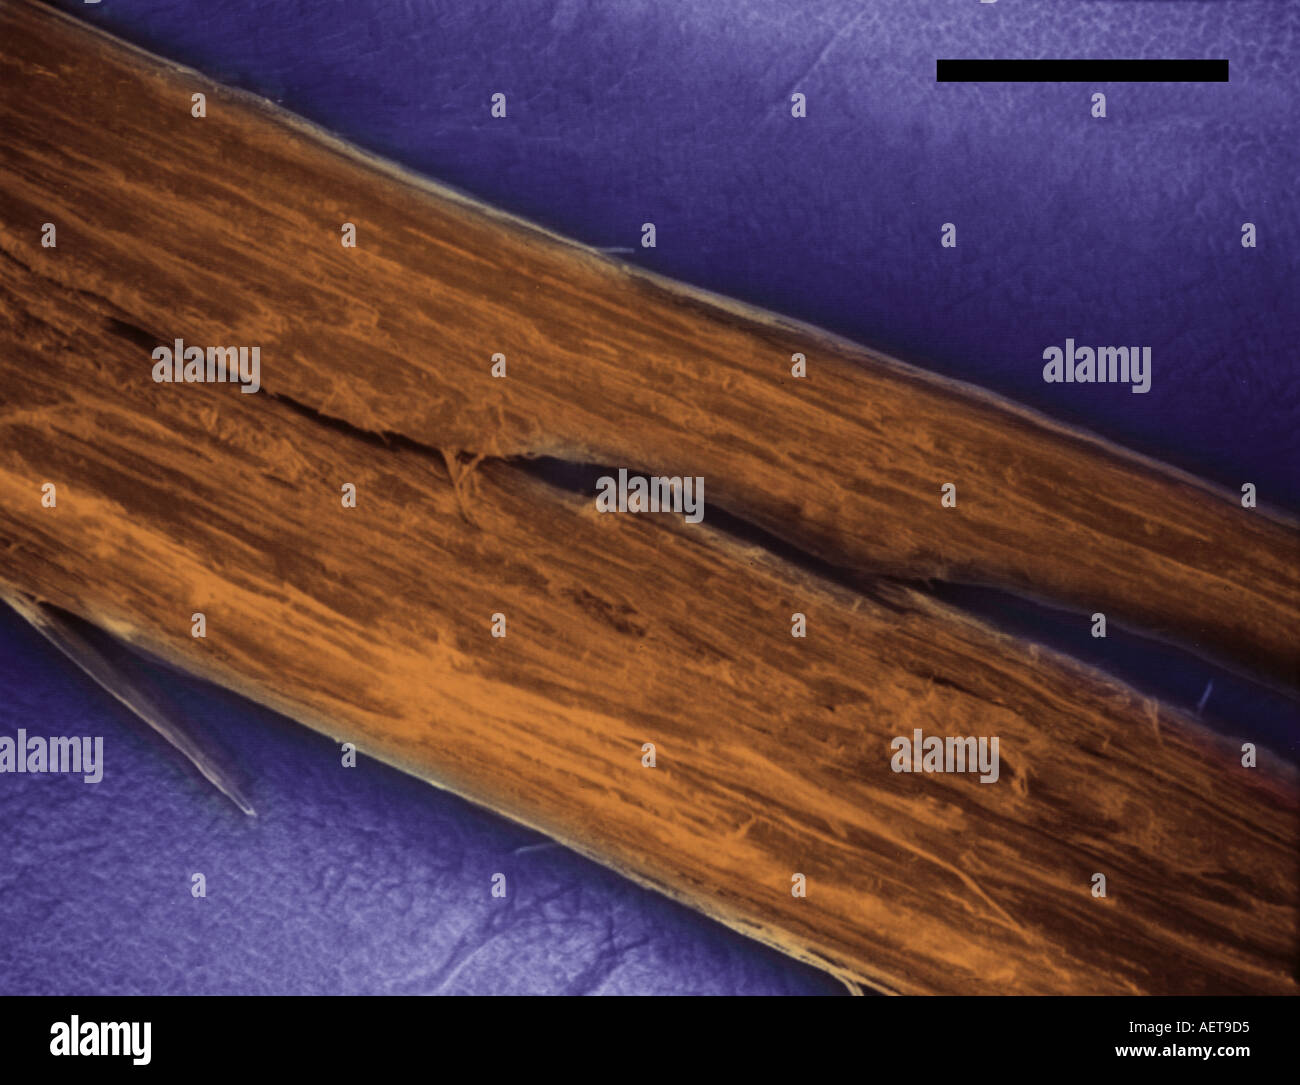 Woman S Hair By Scanning Electron Microscope Showing Split End Black